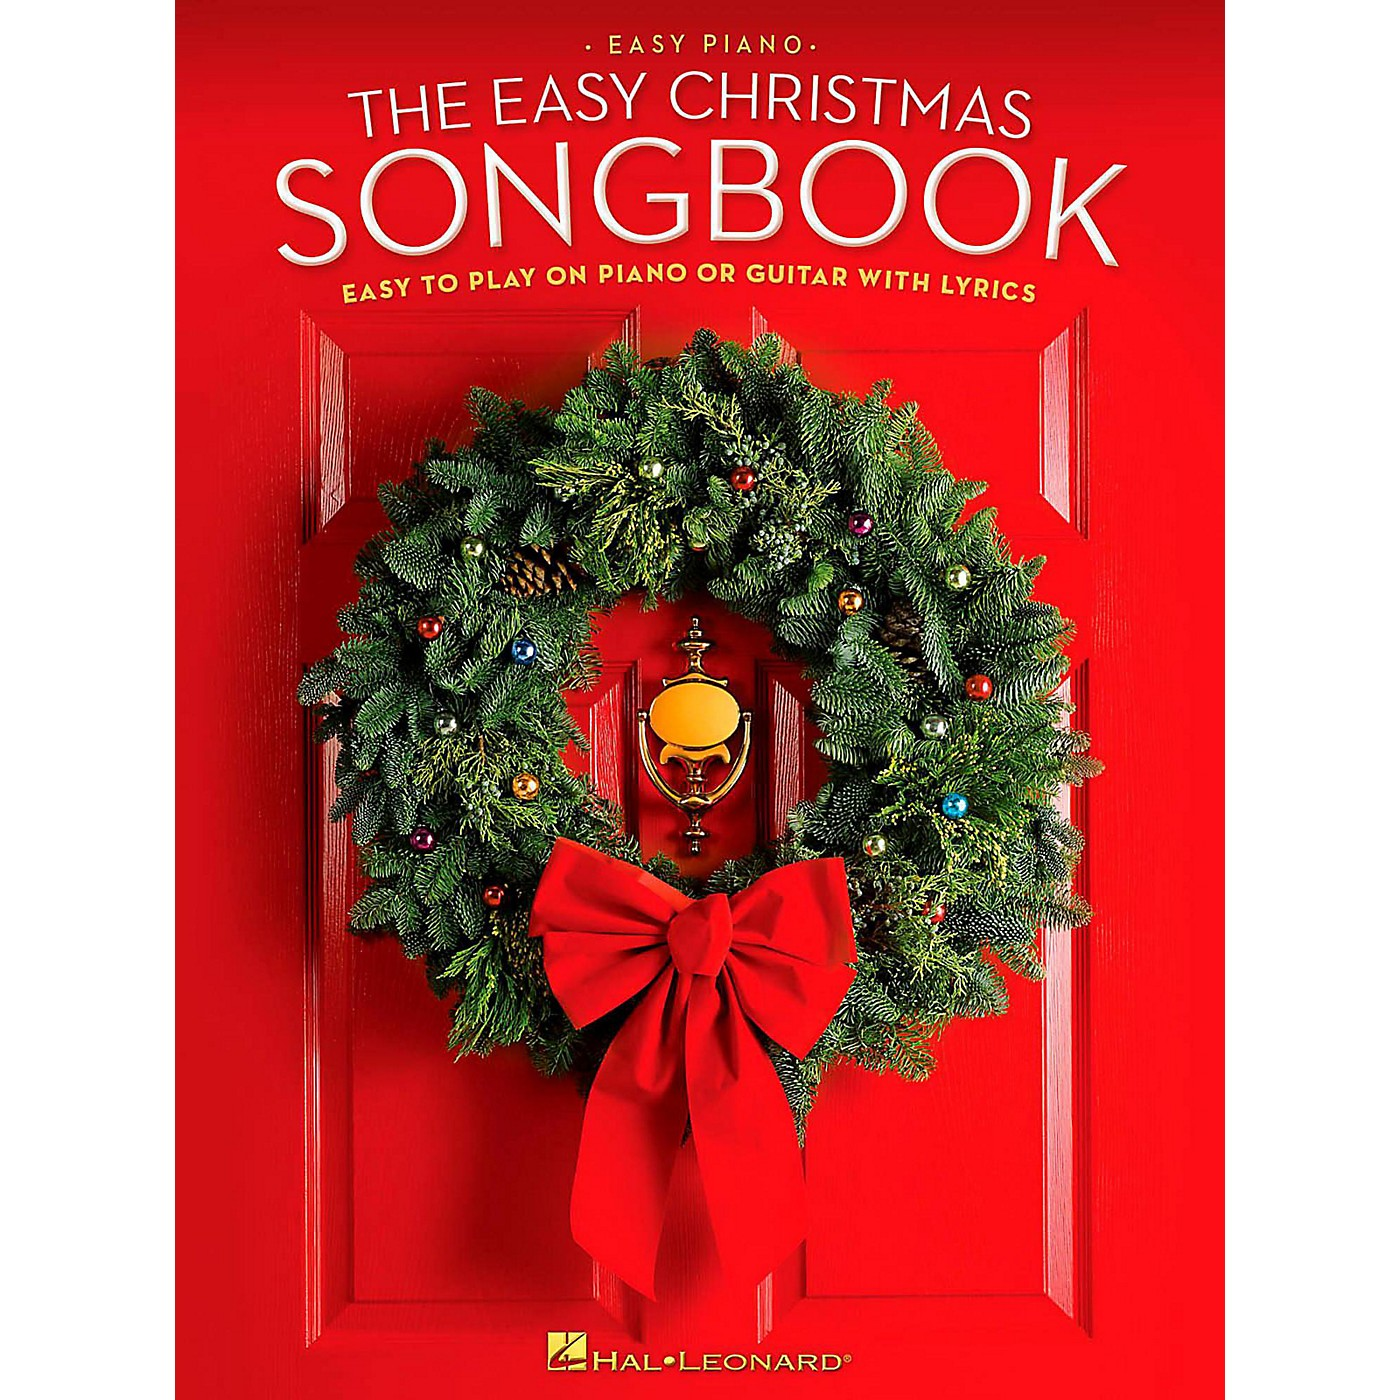 Hal Leonard The Easy Christmas Songbook - Easy to Play on Piano or Guitar with Lyrics thumbnail